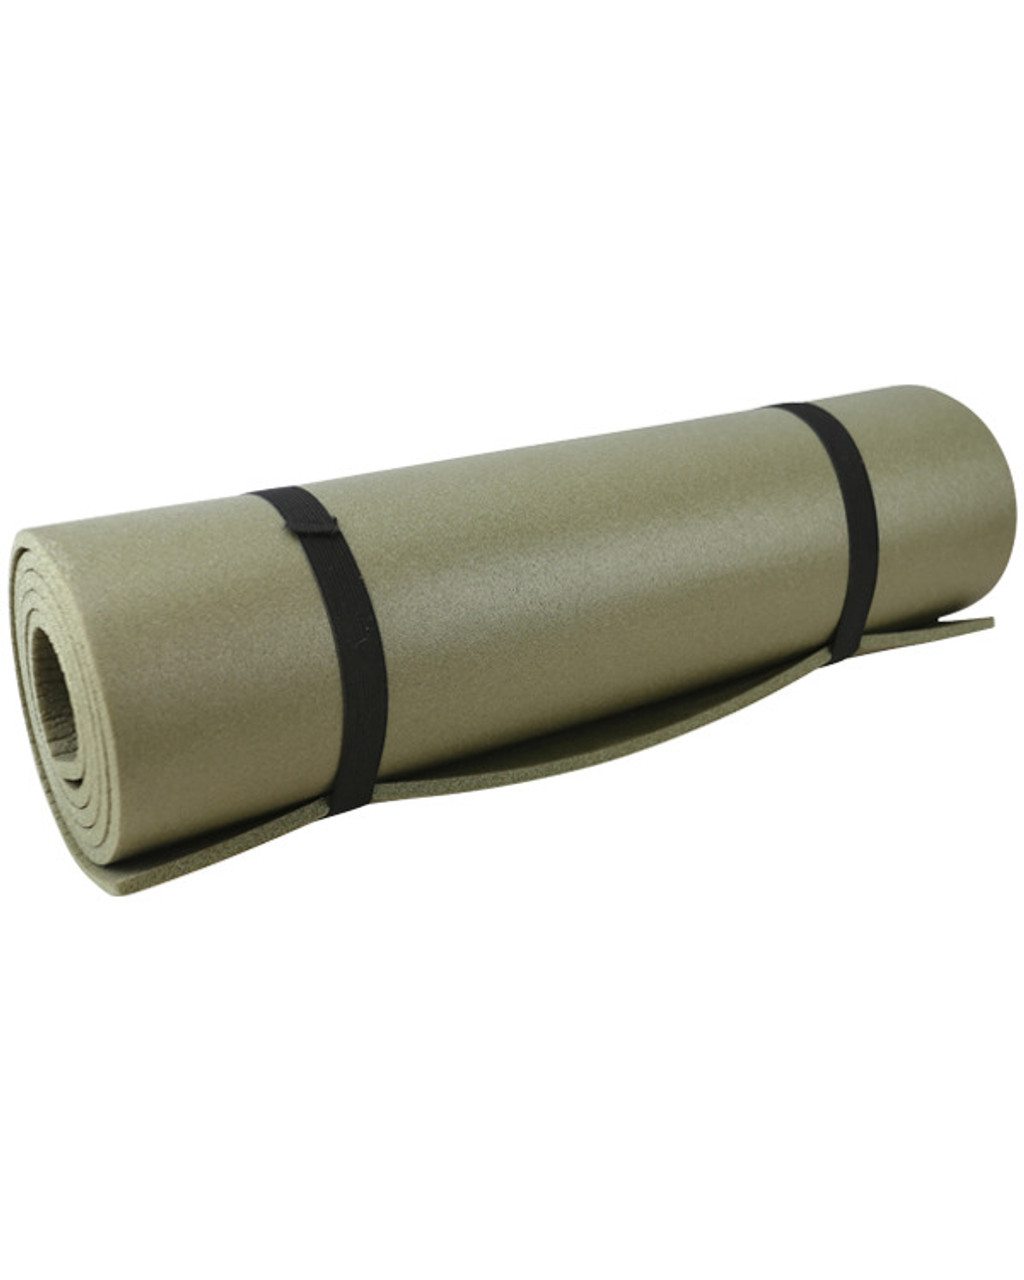 Military Roll Mat - Olive Green